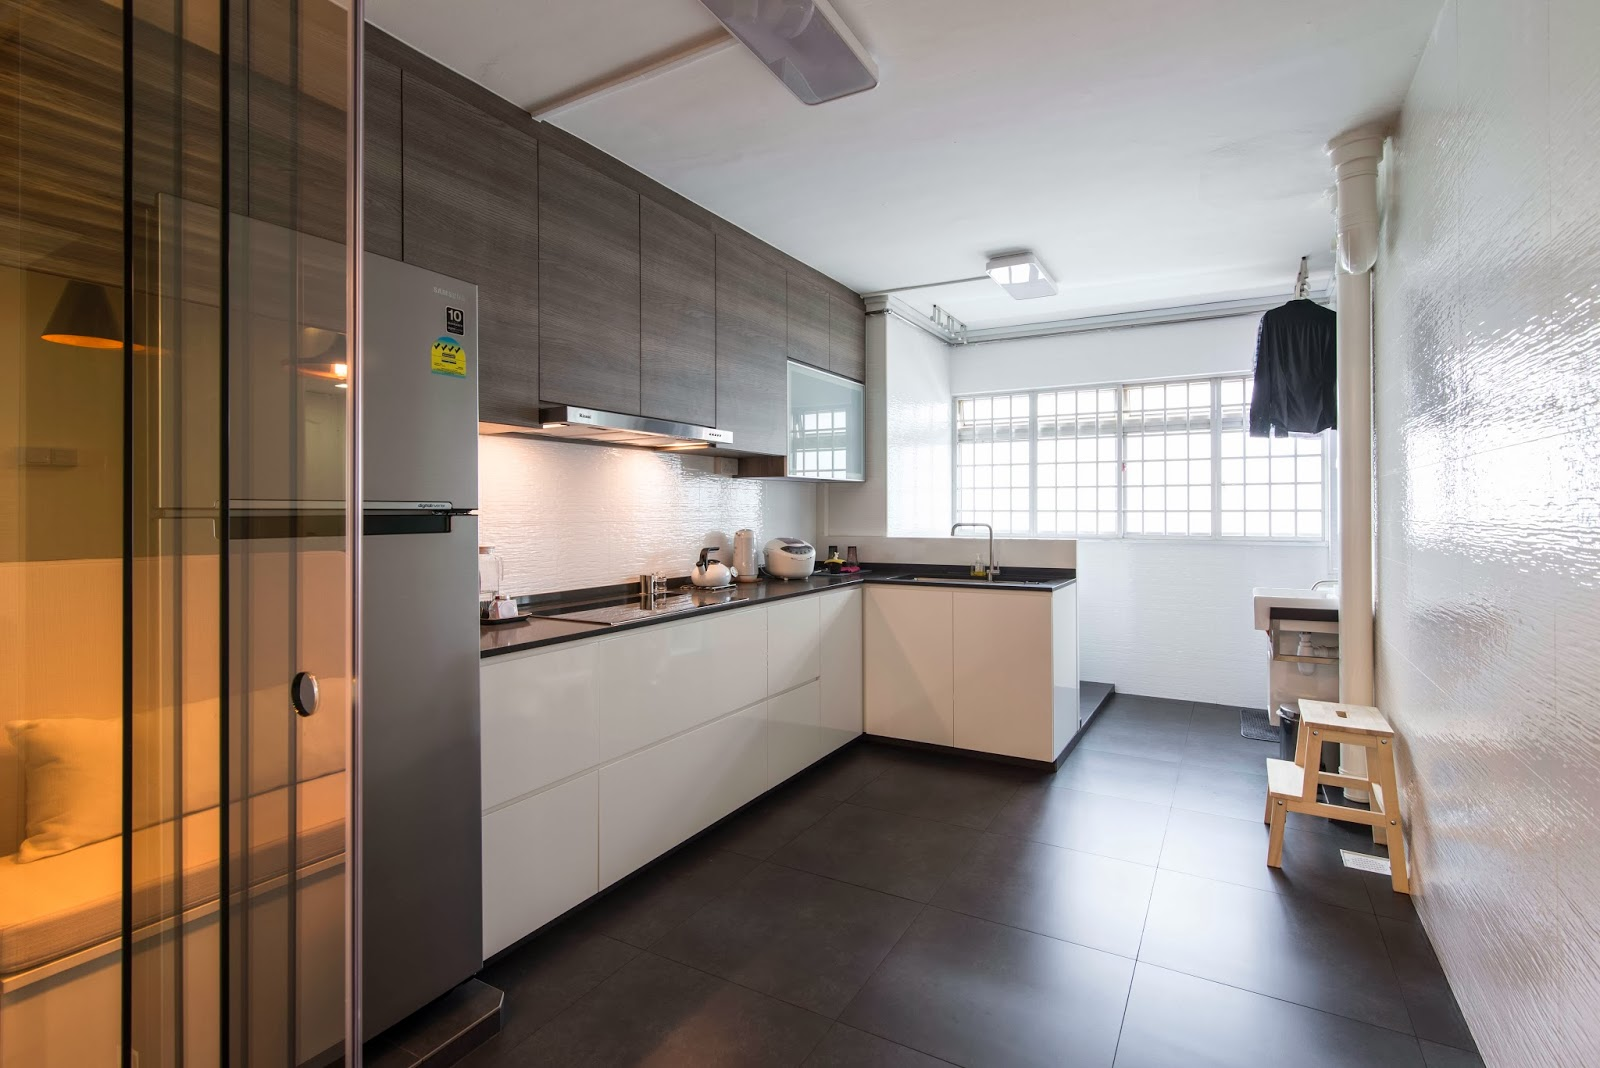 Interior design guide hdb 3 rooms interior design Kitchen door design hdb